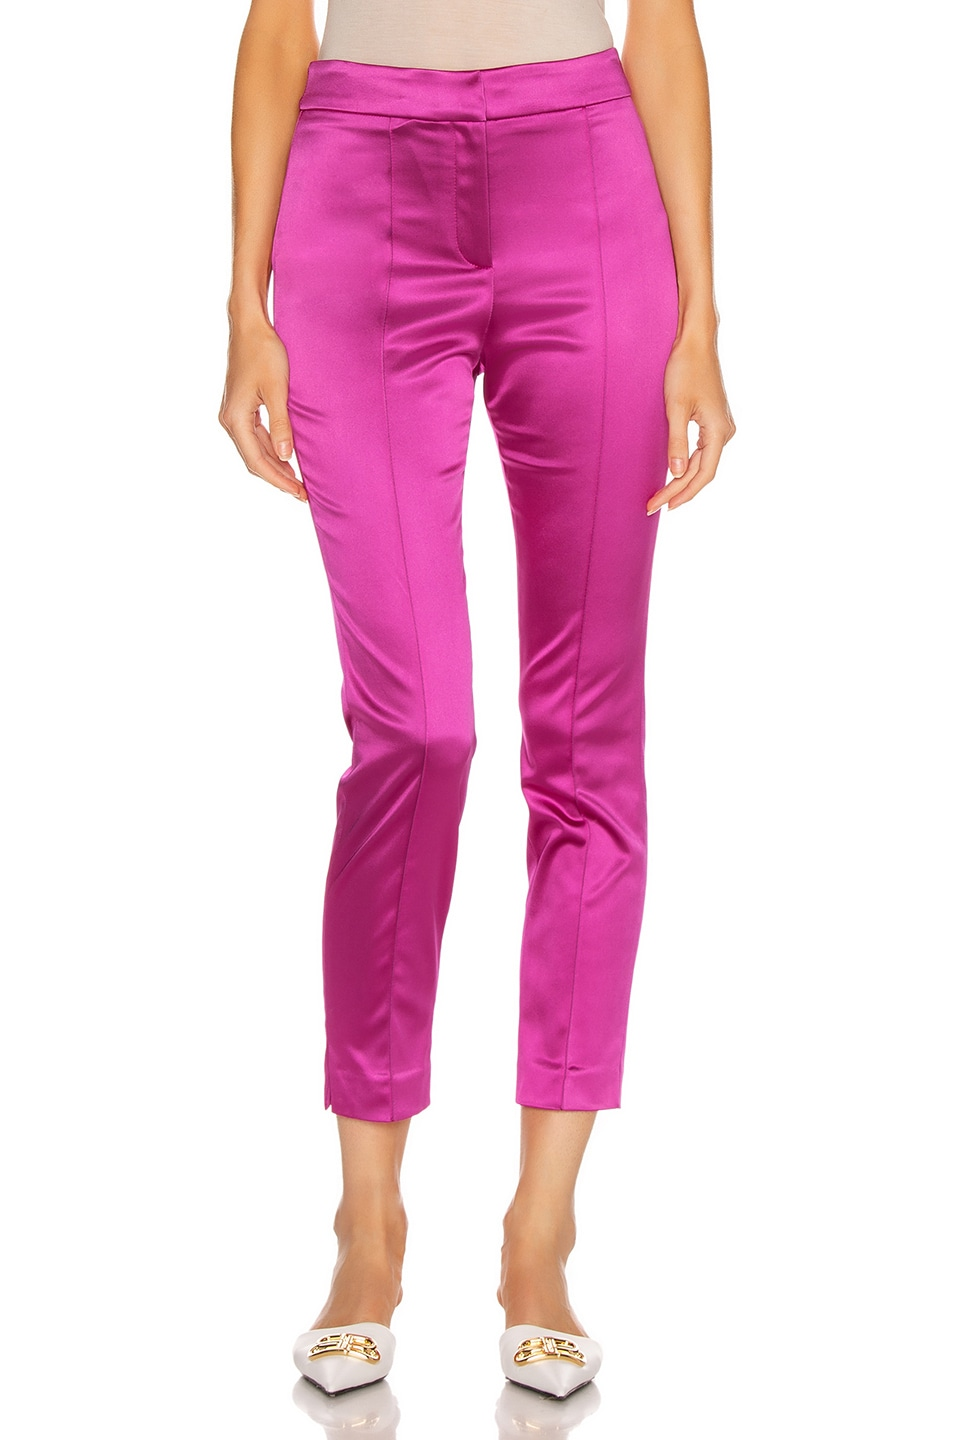 Veronica Beard Pants Lago Pant